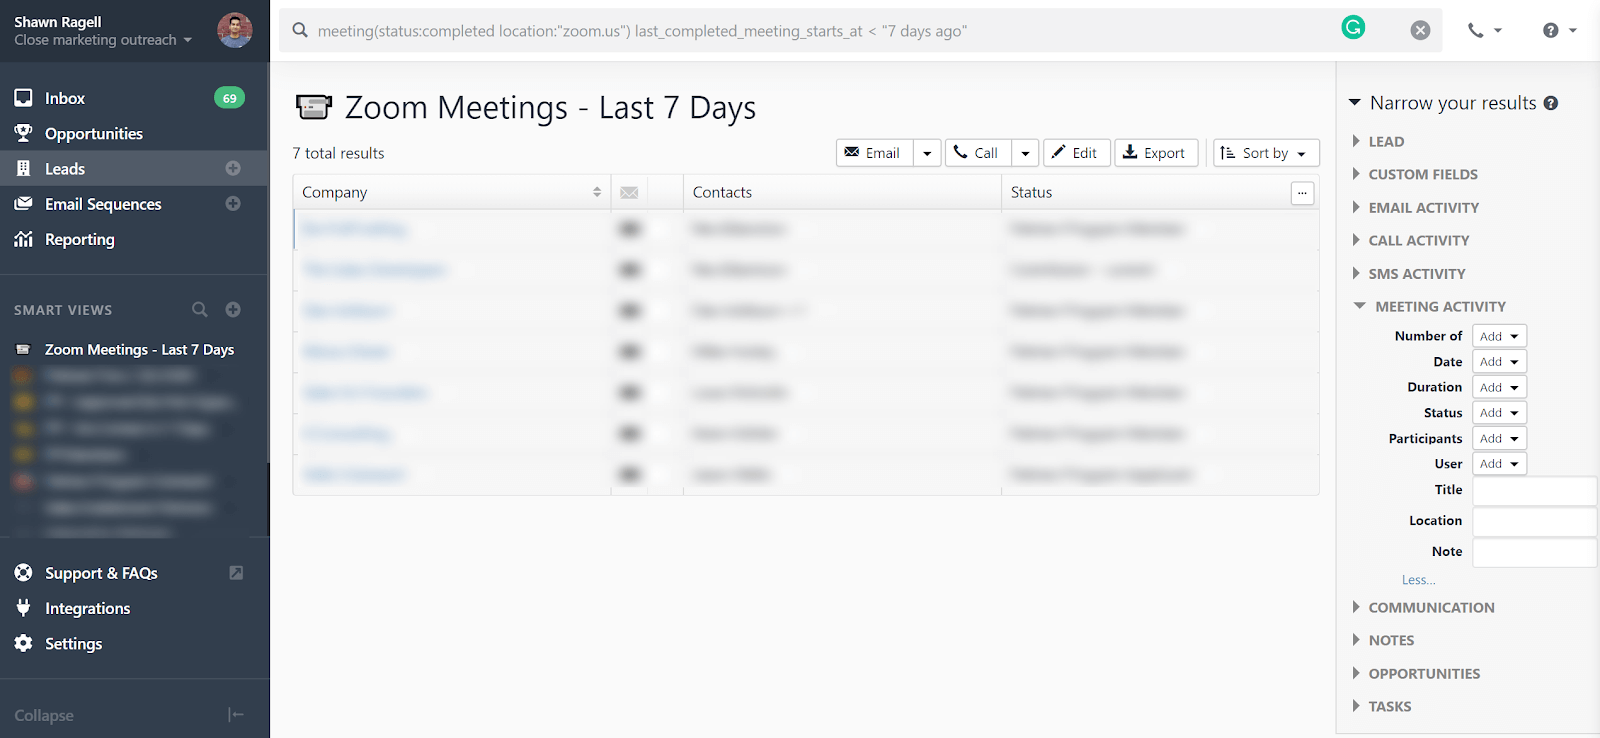 zoom meetings last 7 days